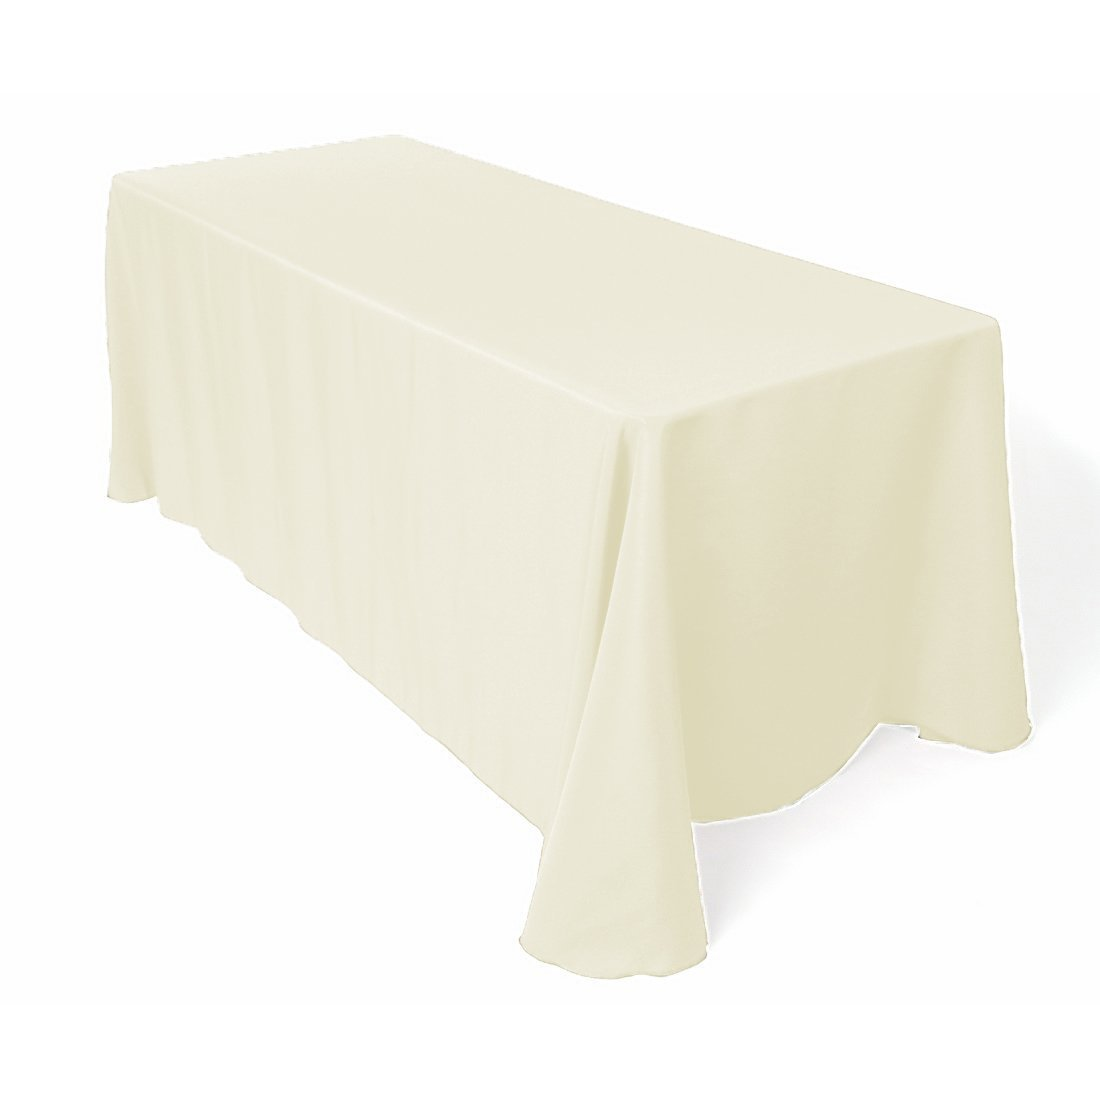 Craft and Party - 10 pcs Rectangular Tablecloth for Home, Party, Wedding or Restaurant Use (90'' X 132'', Ivory)